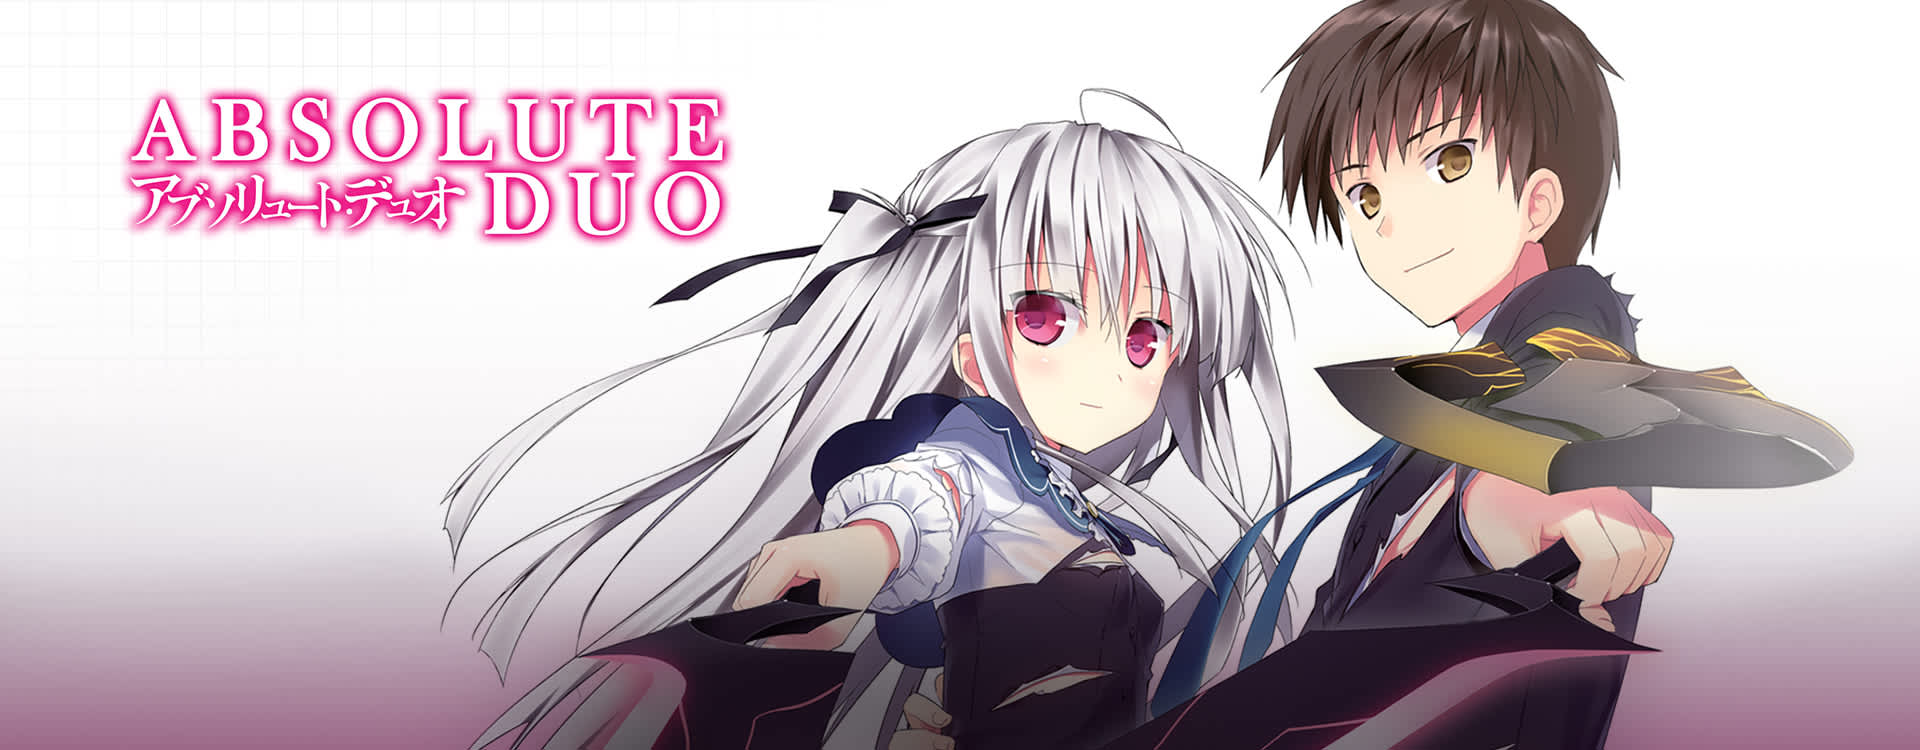 Absolute Duo 1294847_English_ShowDetailHeaderDesktop_82249bf1-4567-e711-8175-020165574d09